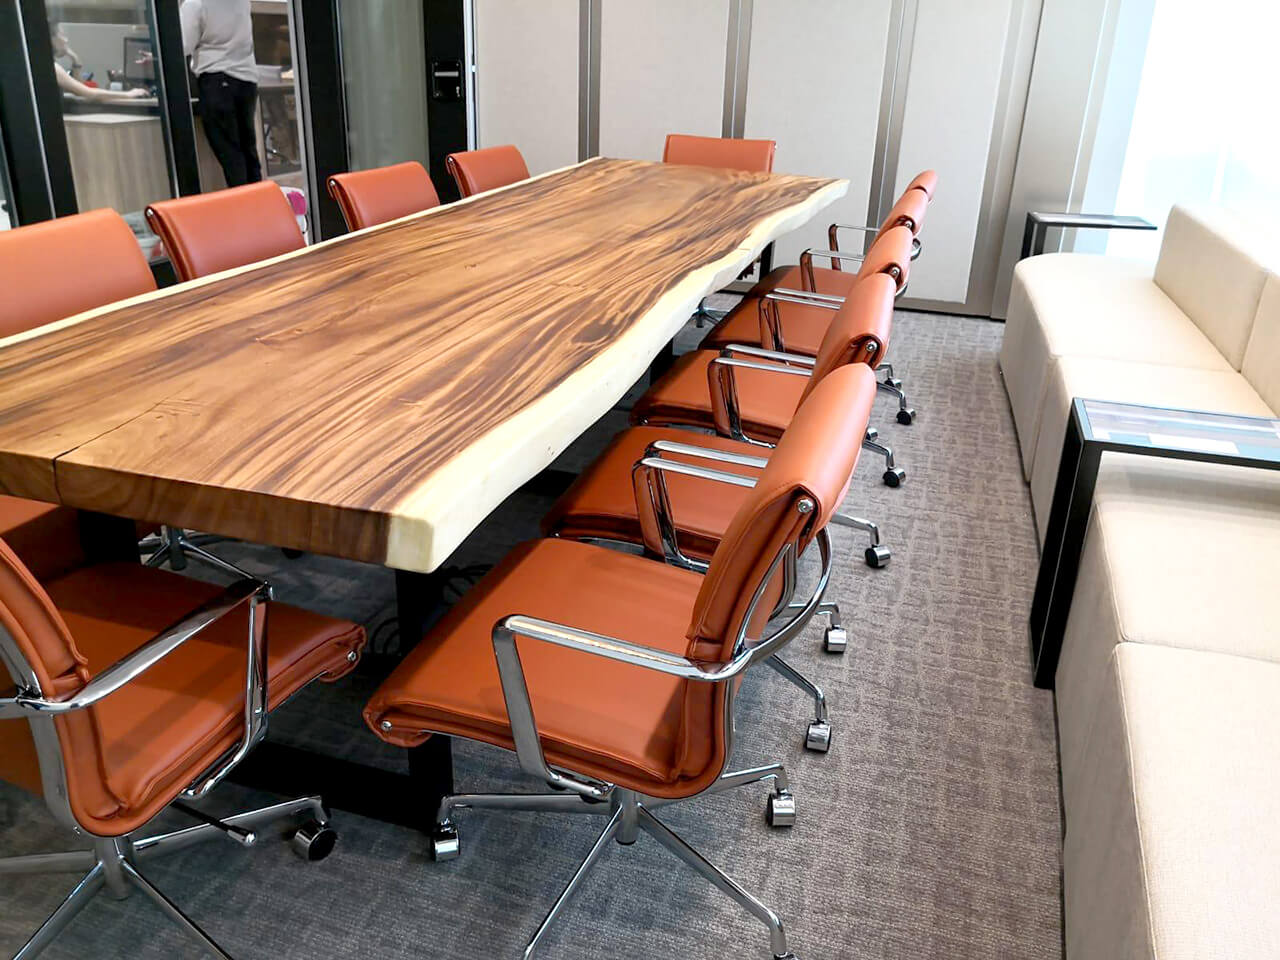 Suitable Sofa Seating Options for Meeting Rooms - Comfort Furniture